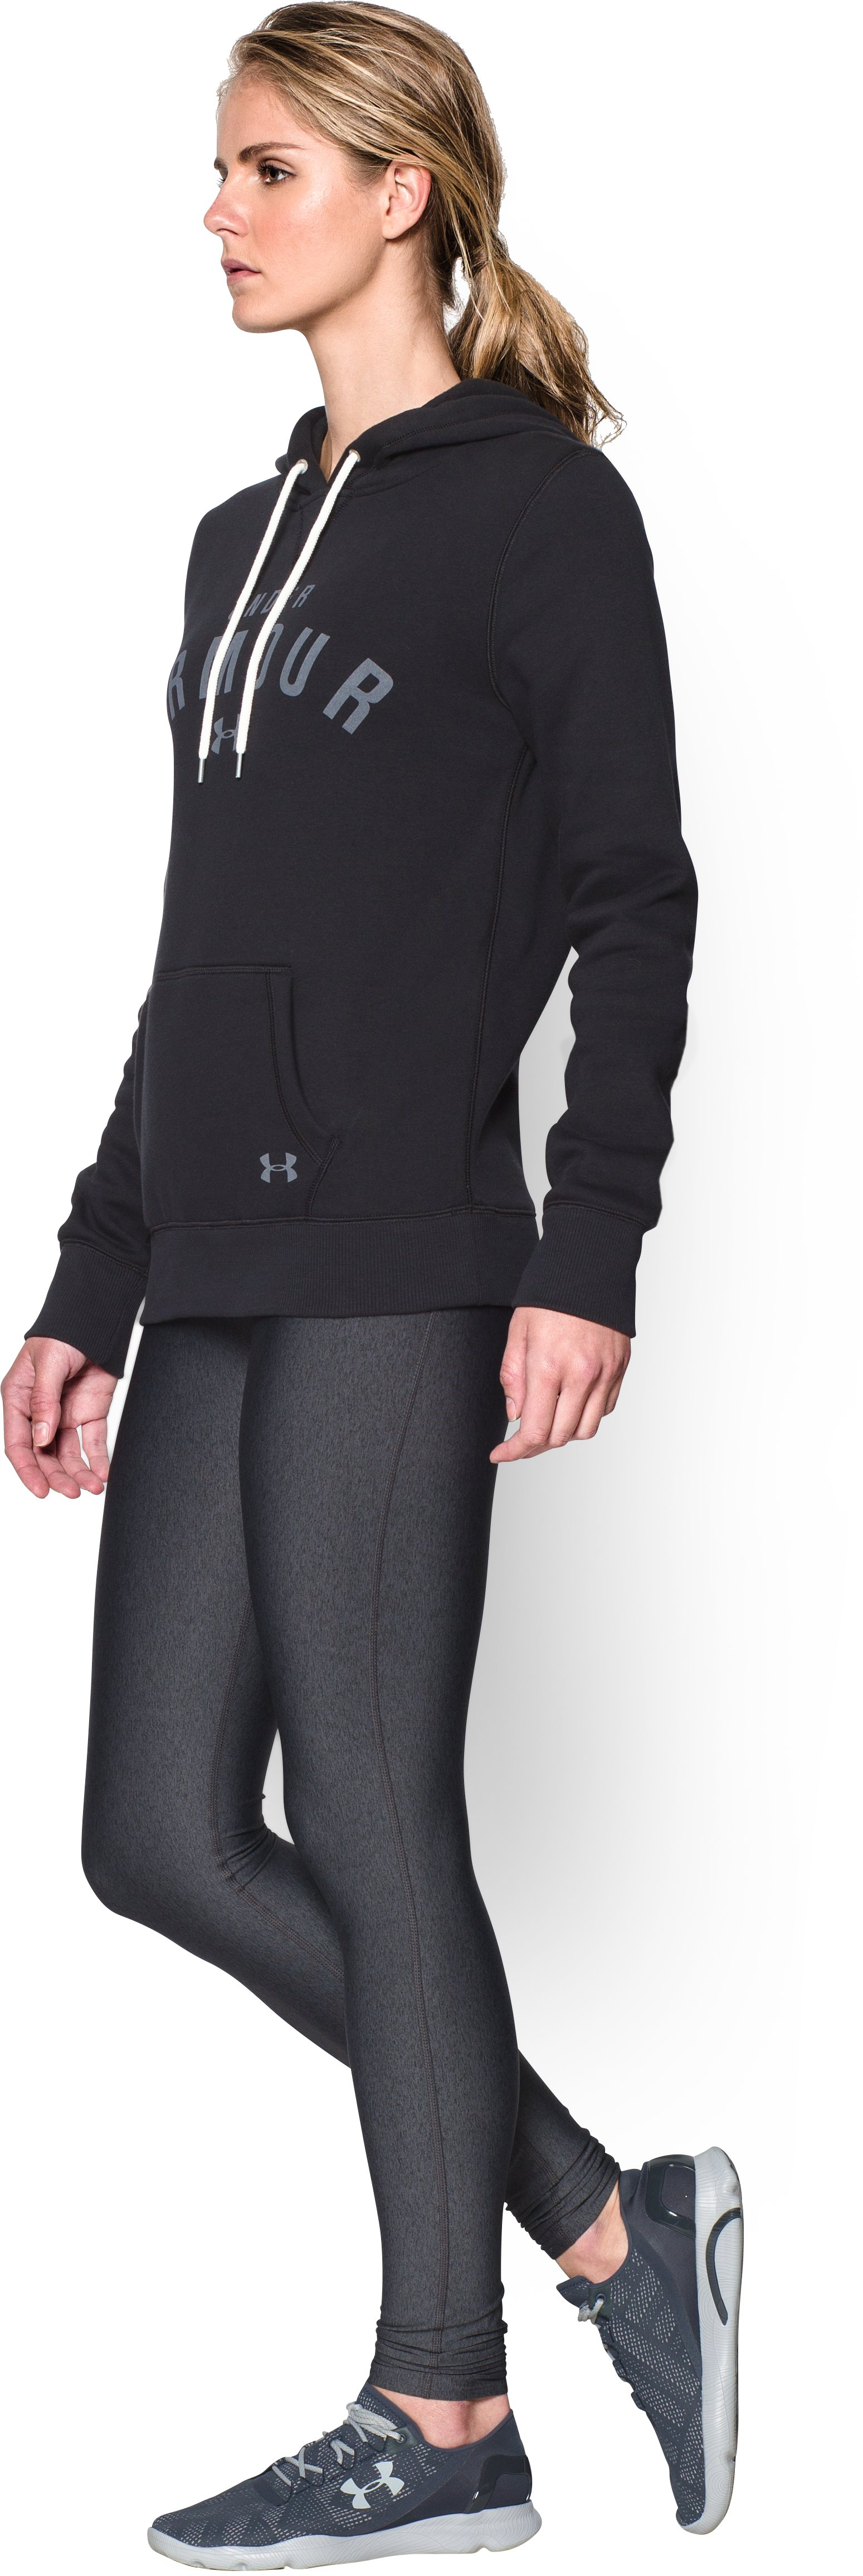 Women's UA Storm Rival Cotton Pullover Hoodie, Black